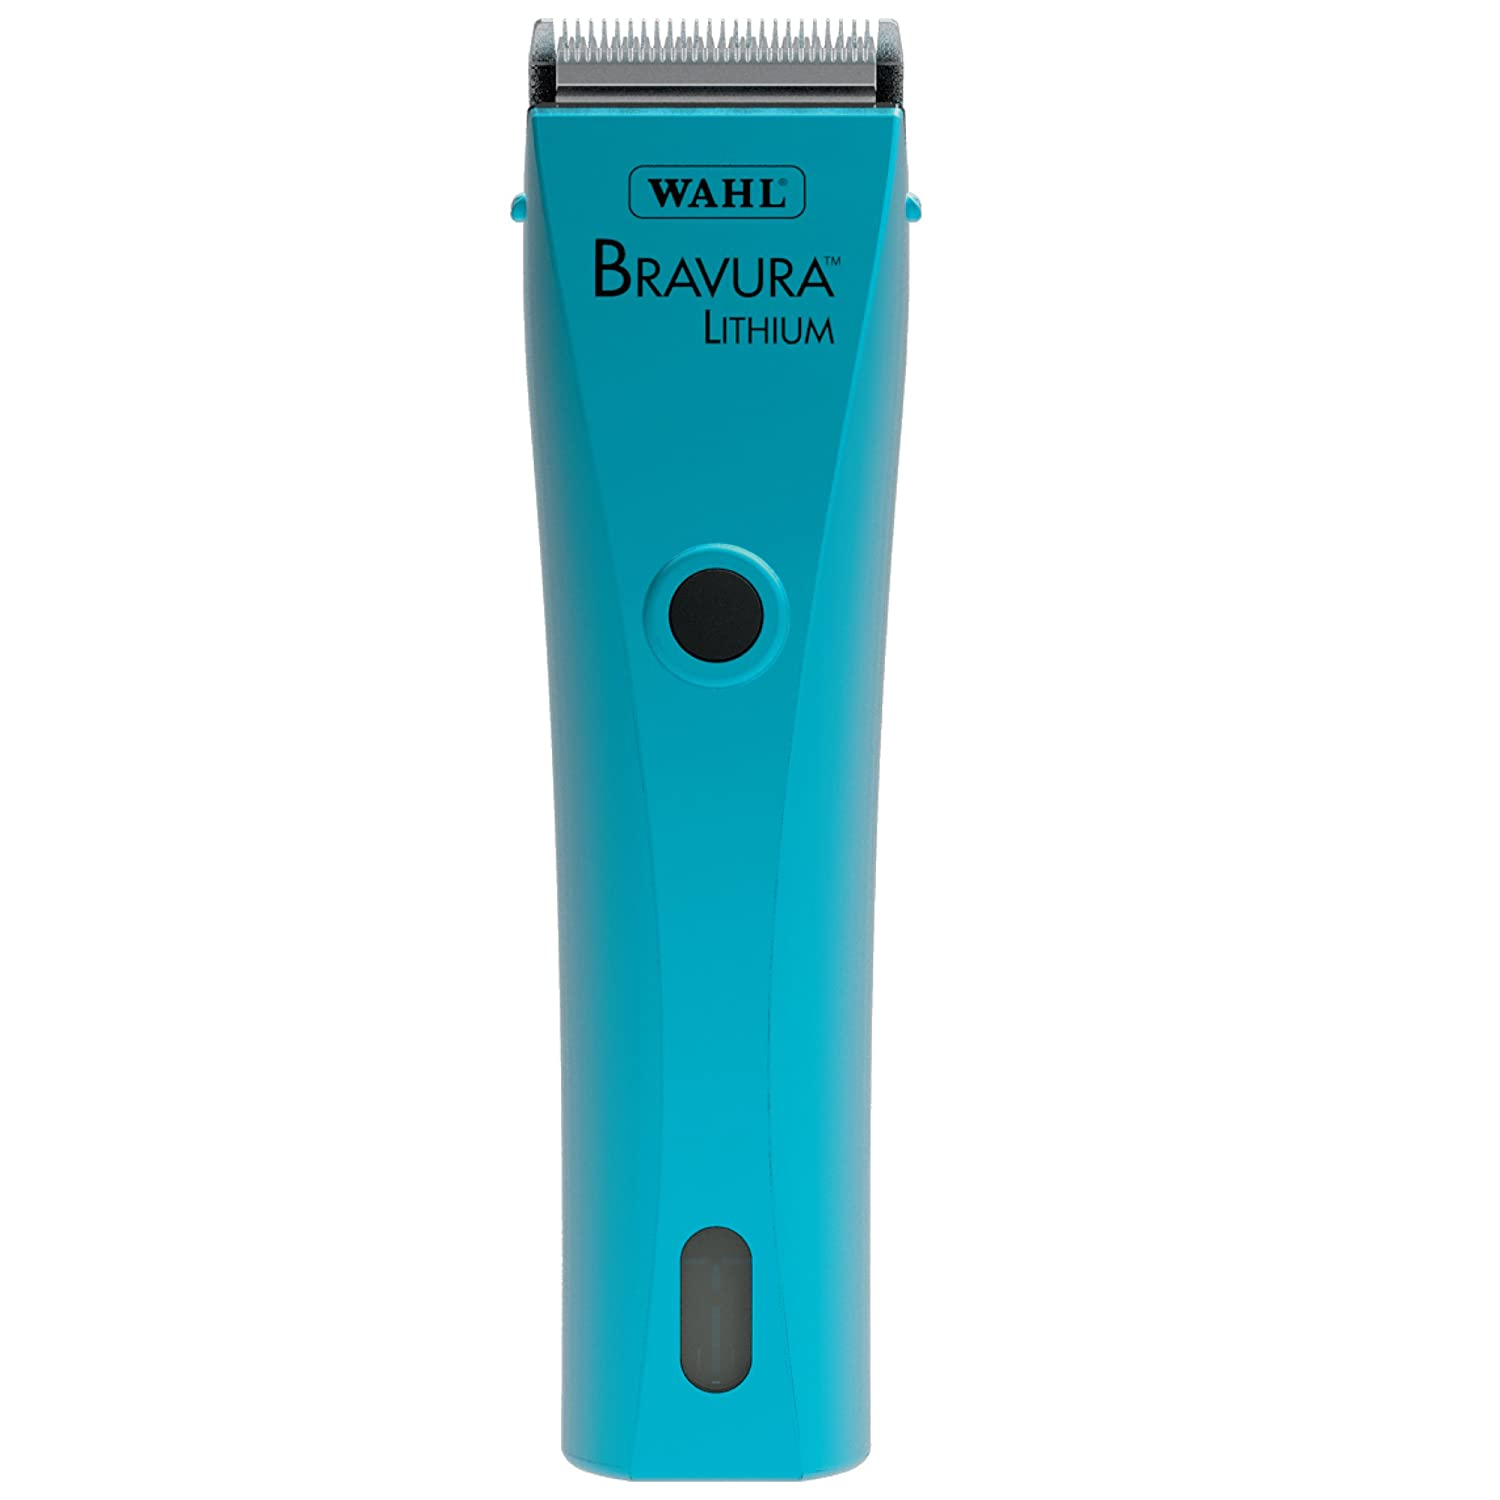 Wahl Professional Animal Bravura Pet, Dog, Cat, and Horse Corded / Cordless Clipper Kit